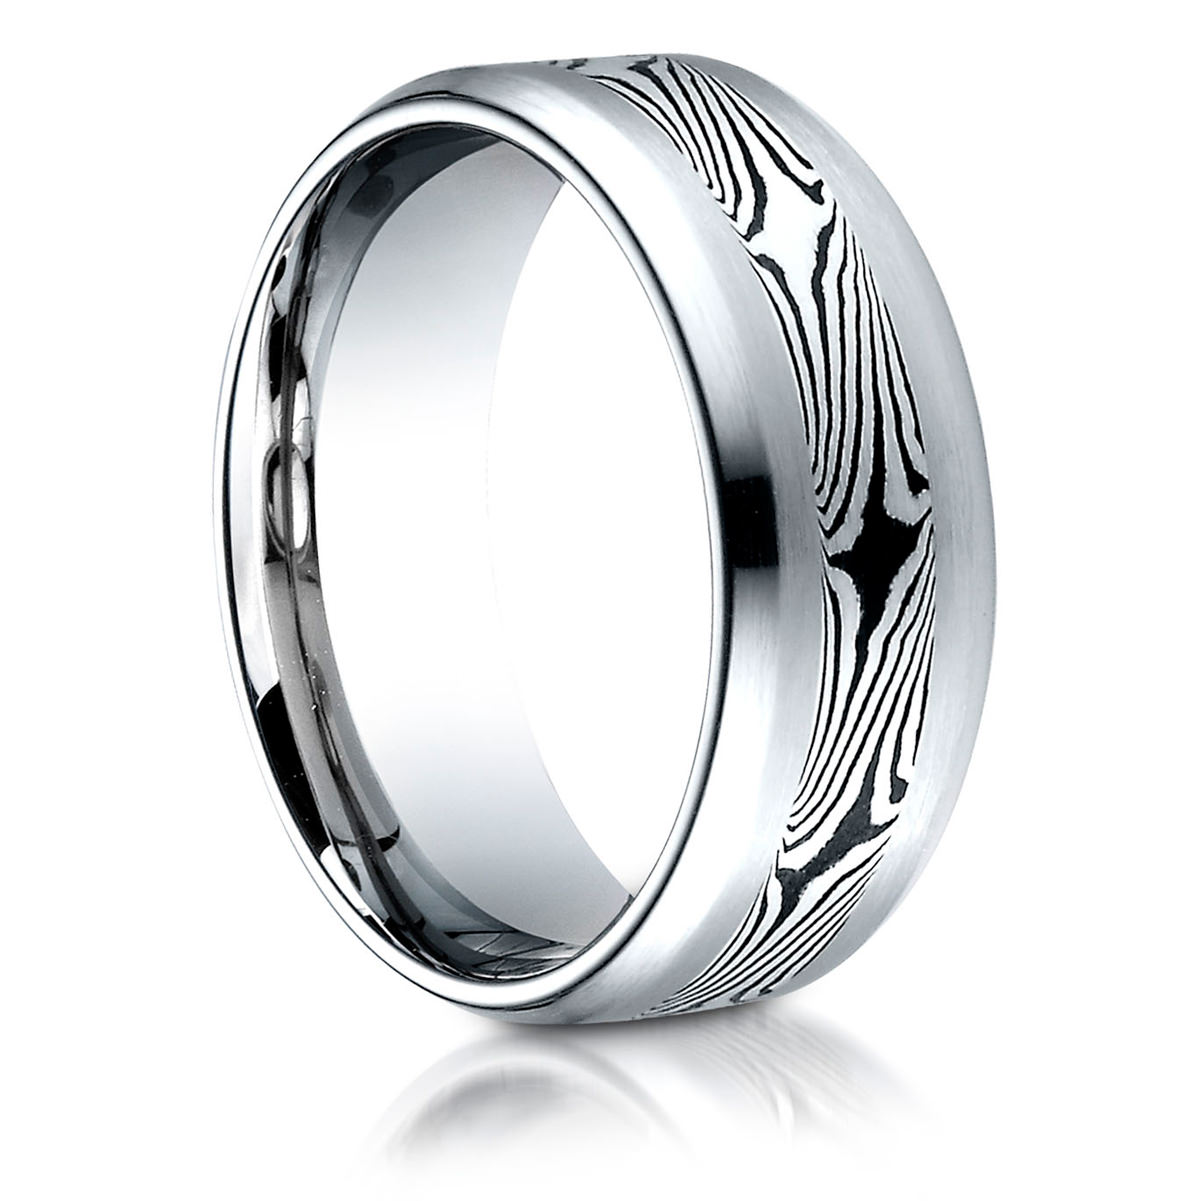 rings gane livemaster engagement shop yang buy in online mokume wedding jewelry item technique handmade yin metal